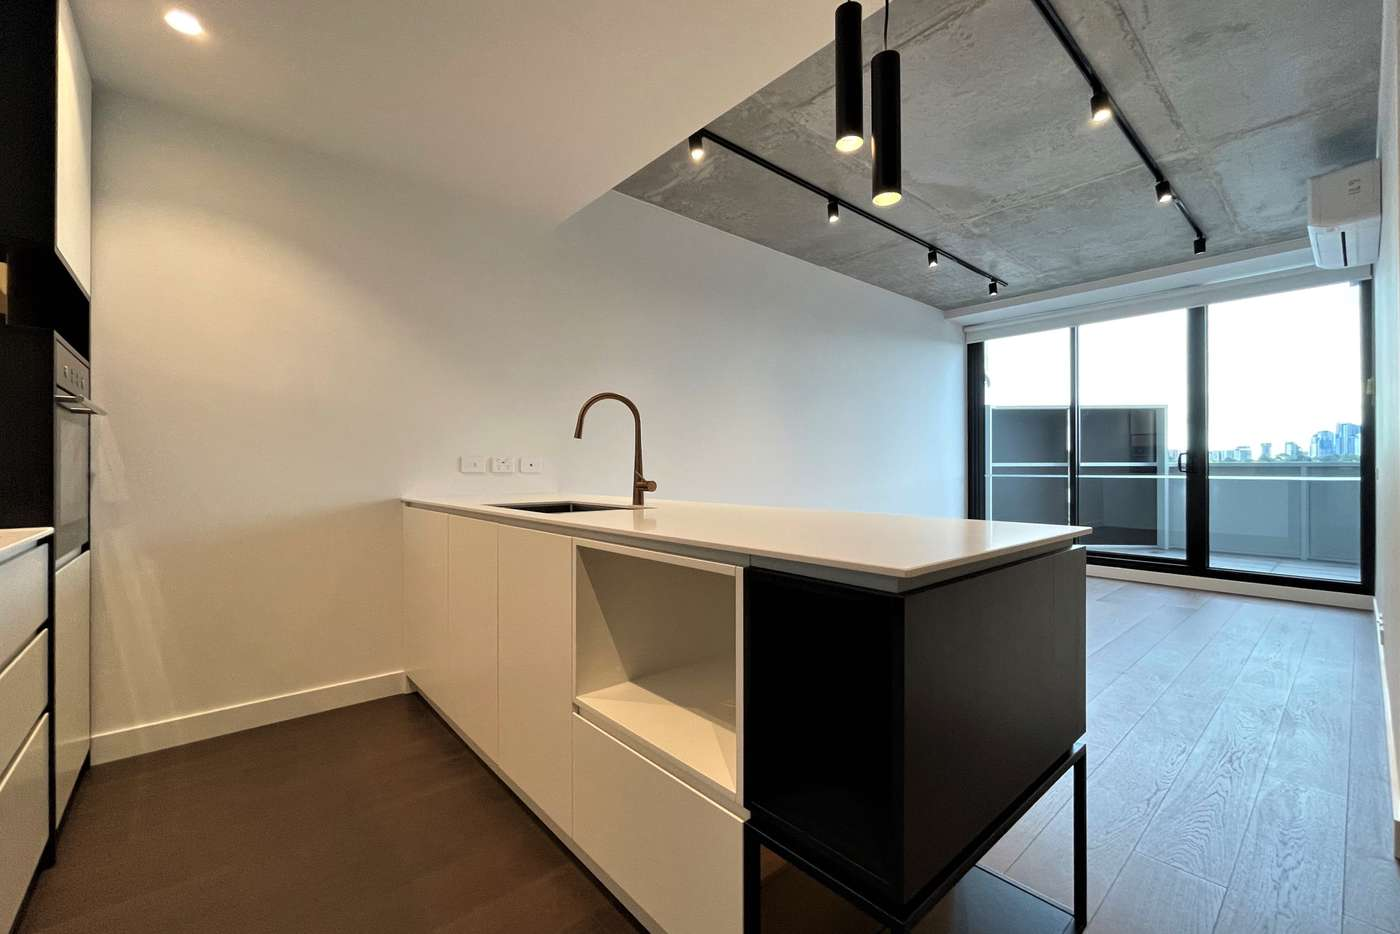 Main view of Homely apartment listing, 911/154 Cremorne Street, Cremorne VIC 3121